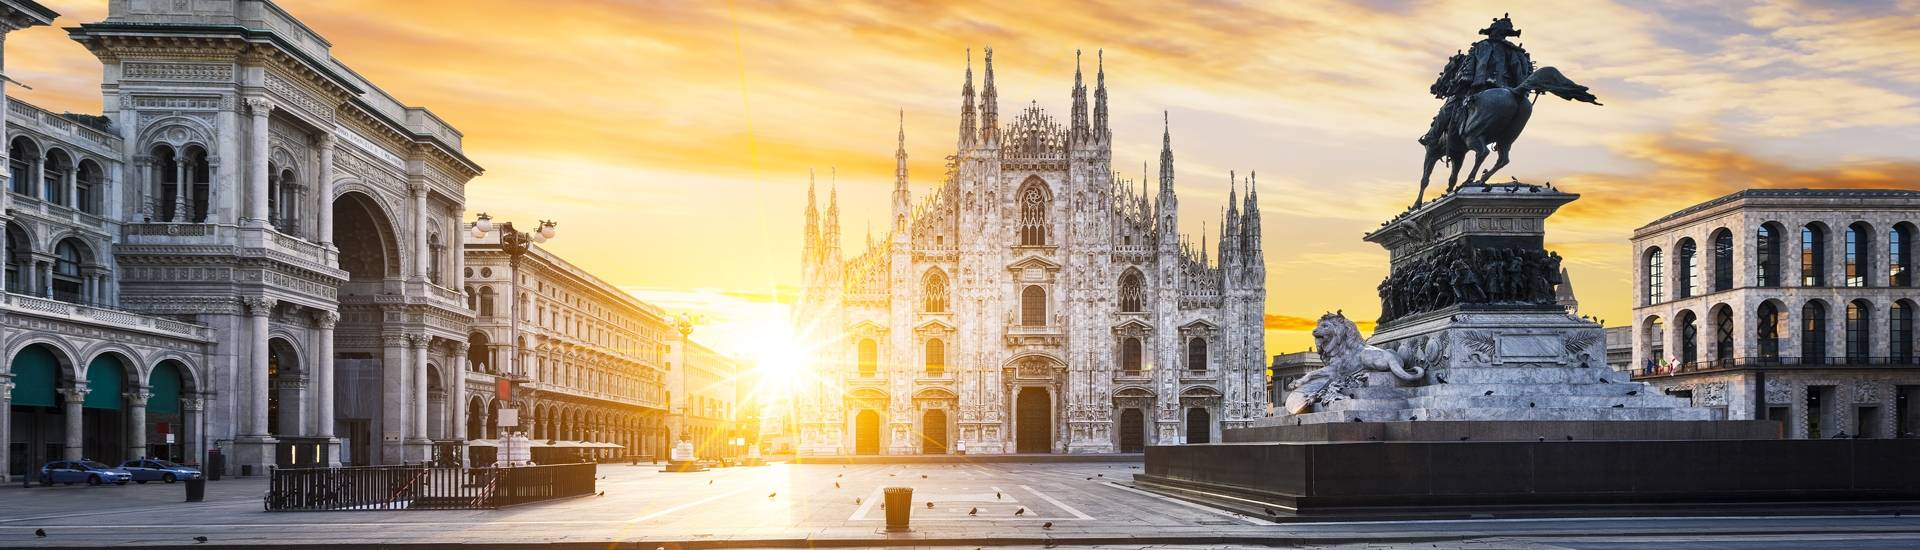 Managing disruption on a Monday morning in Italy